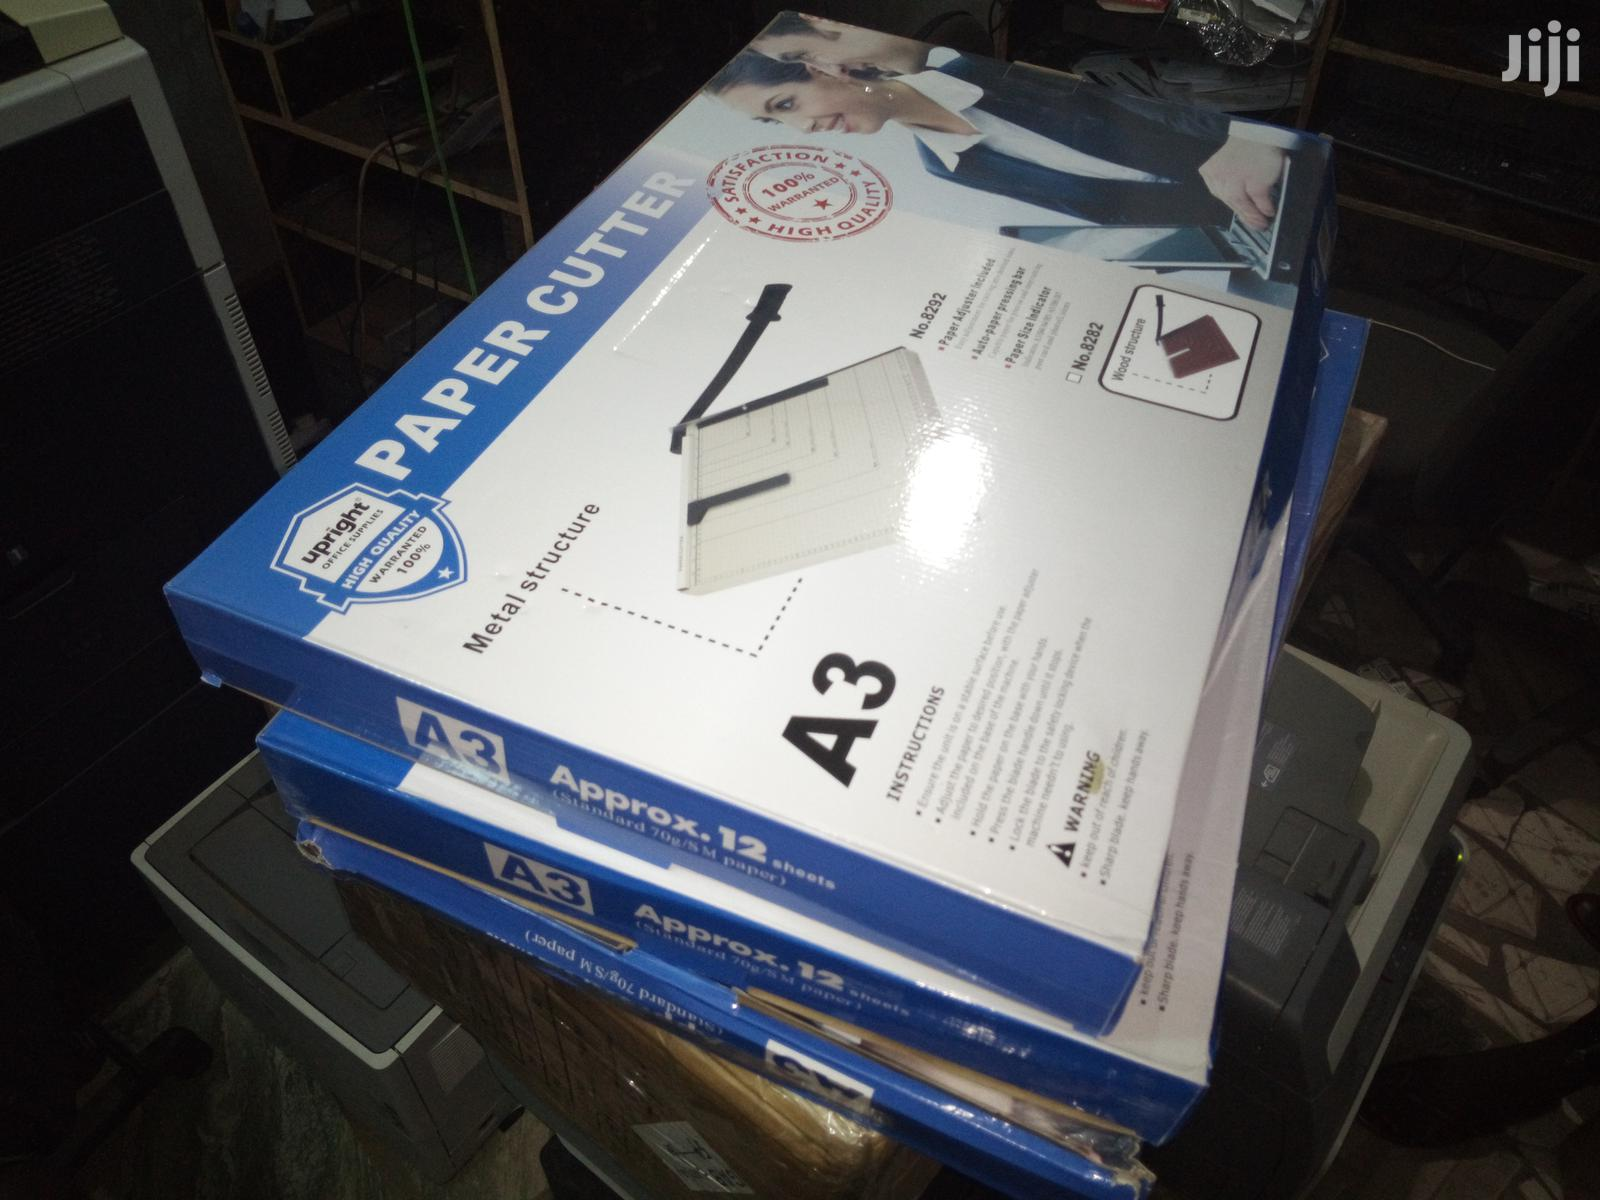 Brand New A3/A4 Handheld Paper Cutter Machine | Stationery for sale in Madina, Greater Accra, Ghana